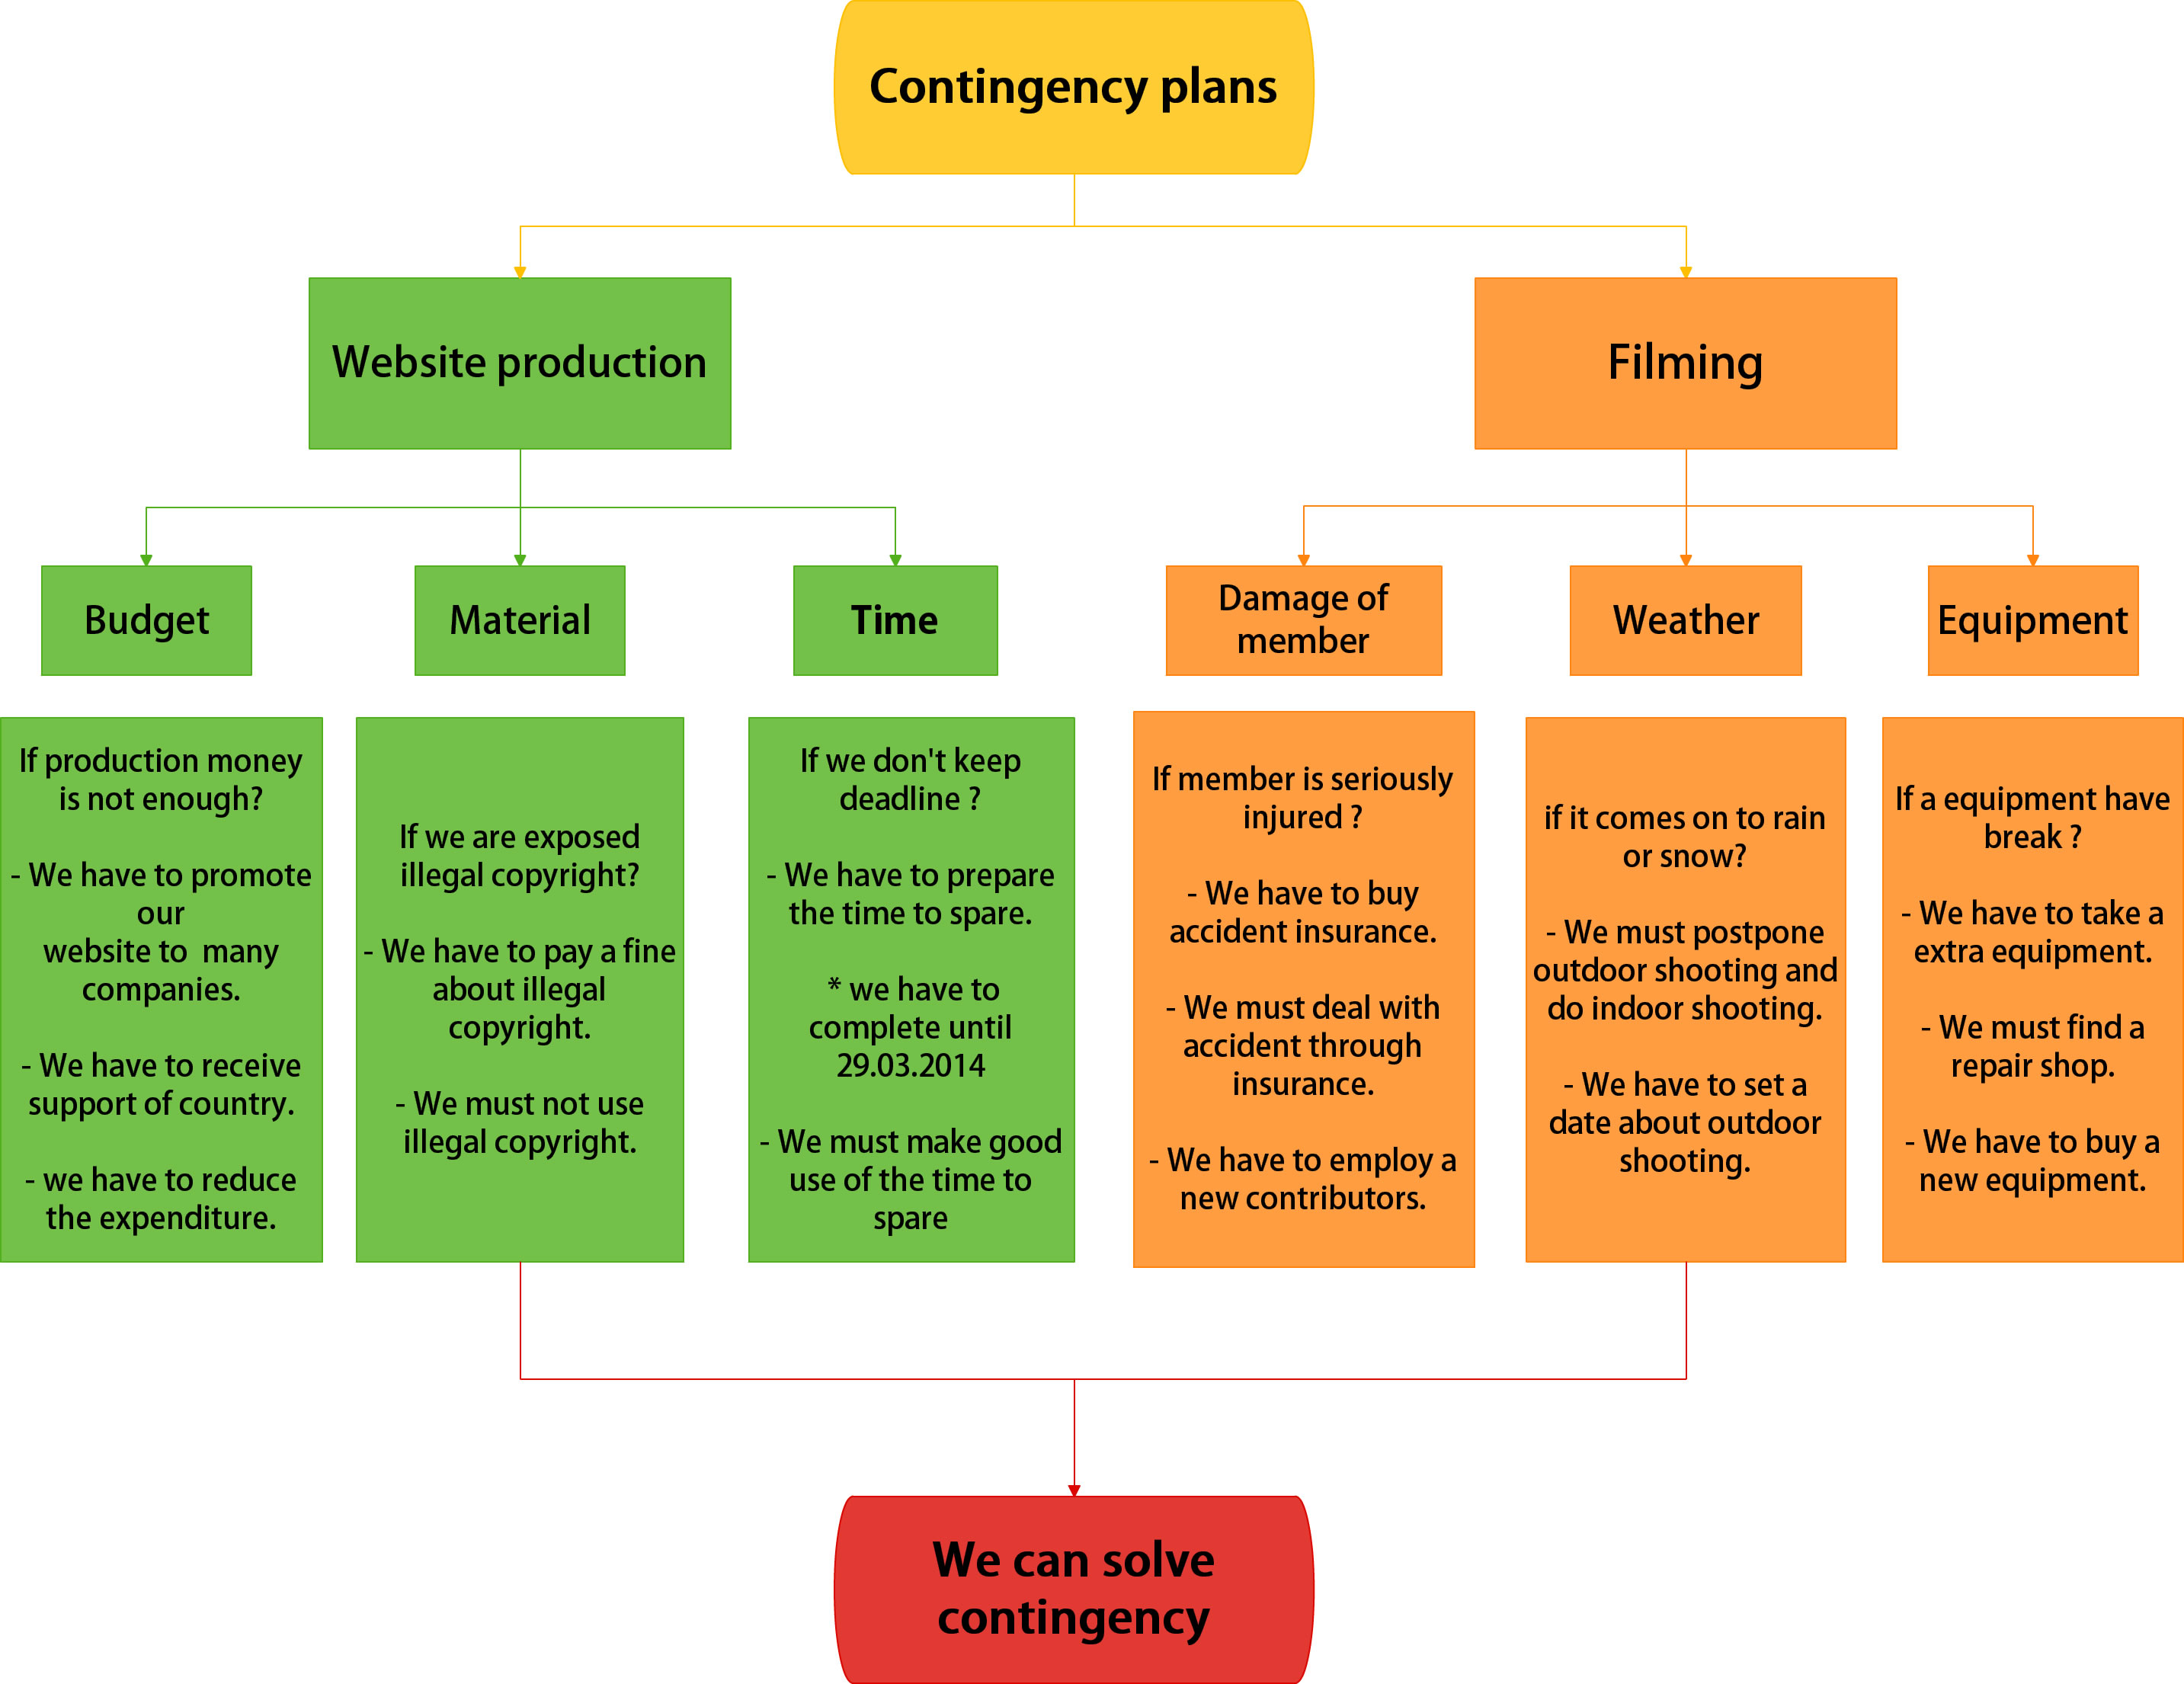 22 Contingency Plans – Contingency Plan Examples